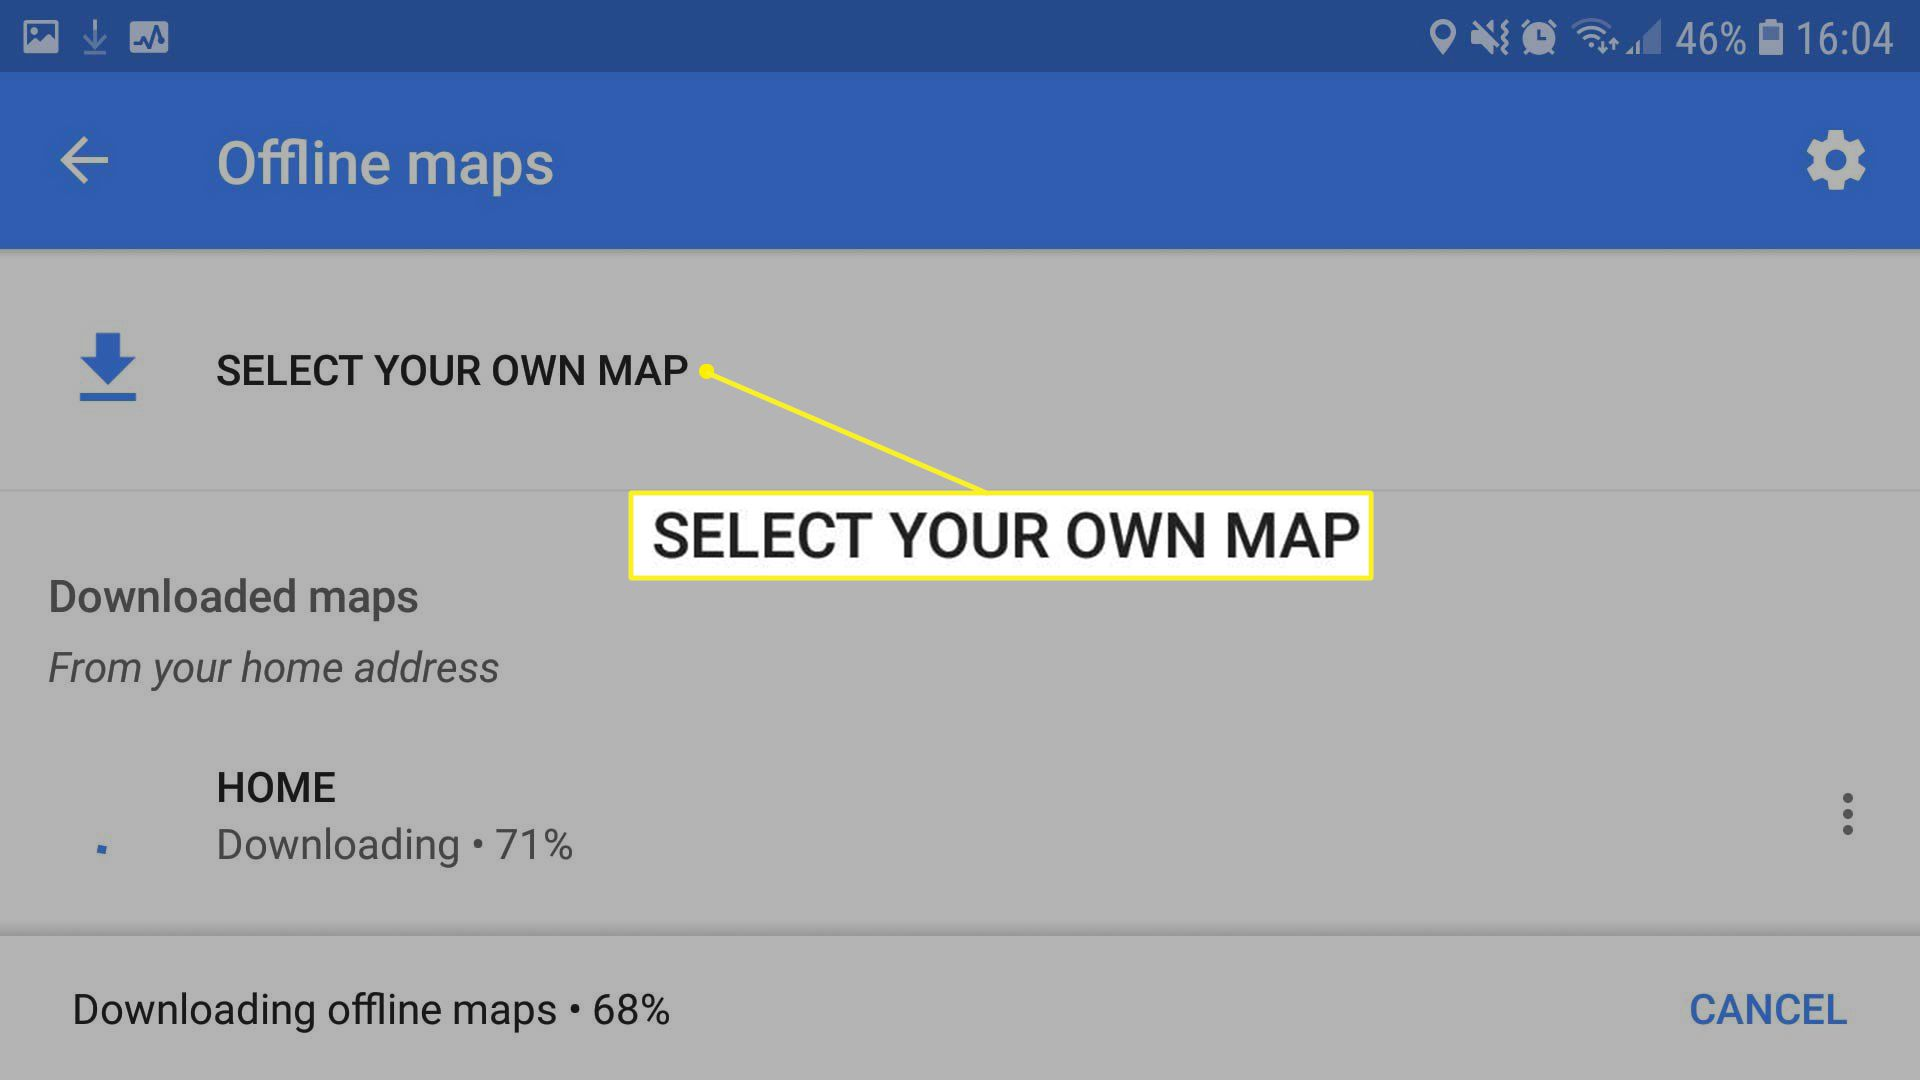 Offline maps screen with Select Your Own Map highlighted